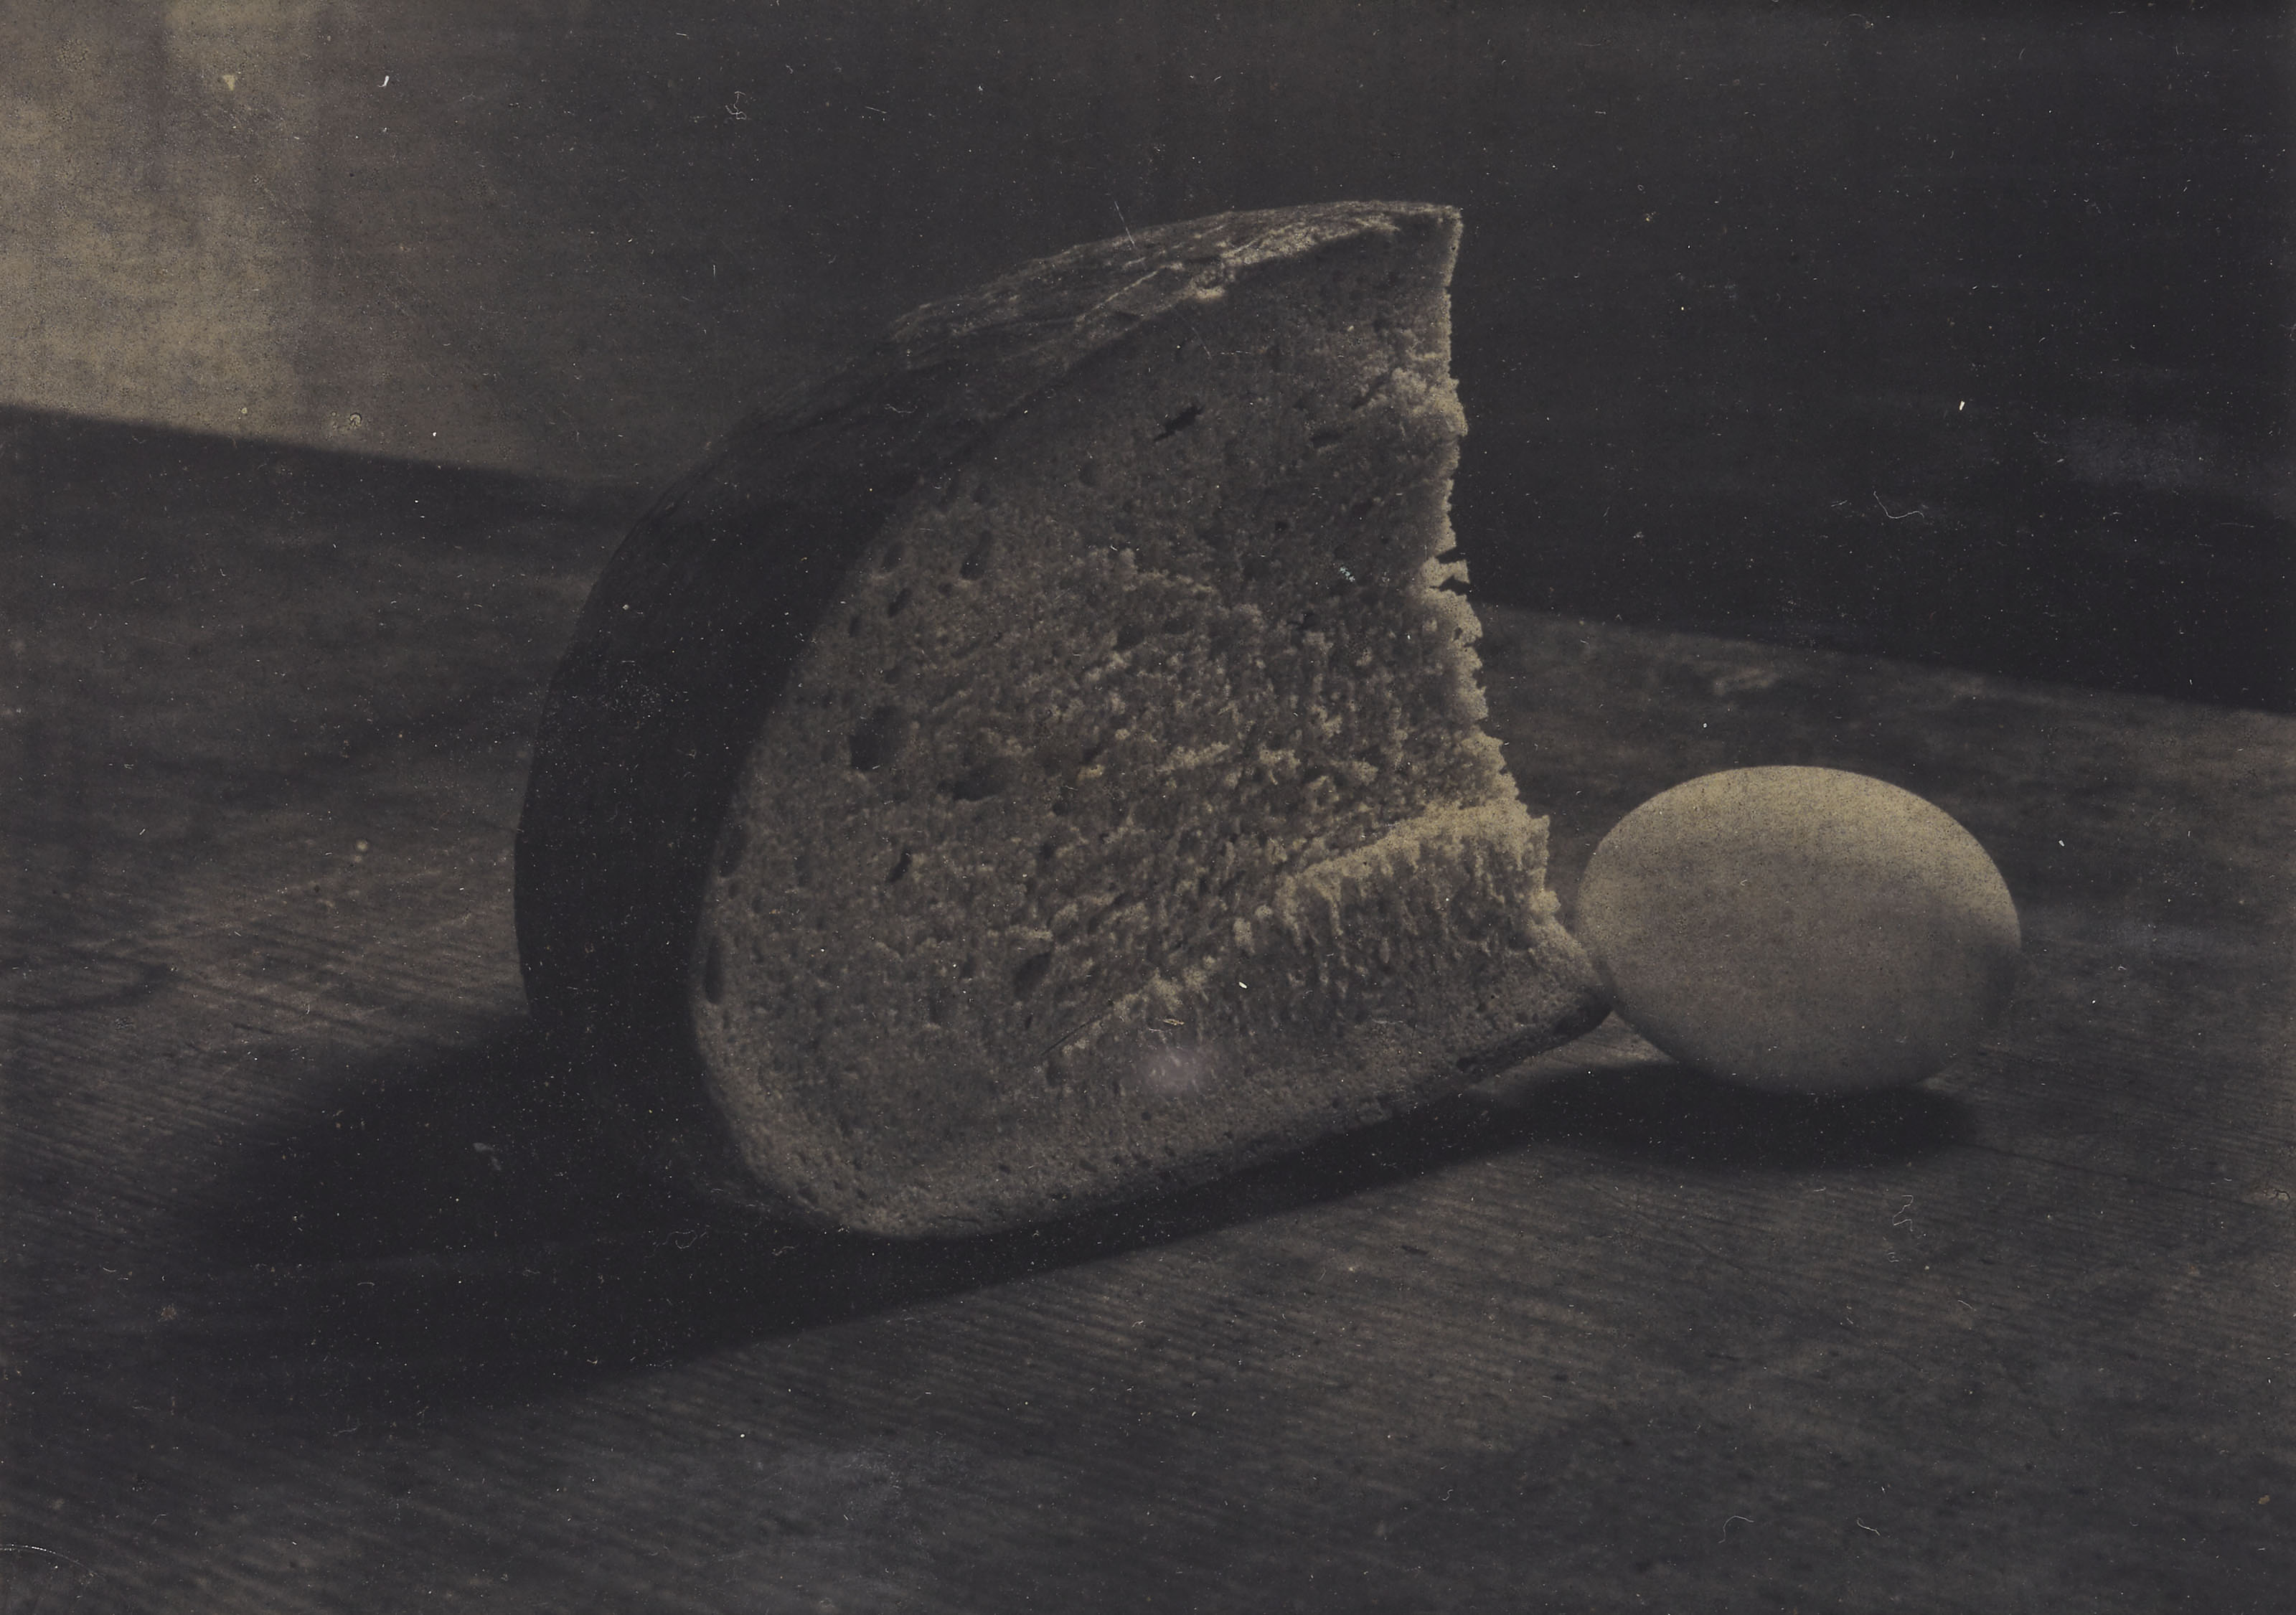 Bread and Egg, 1951